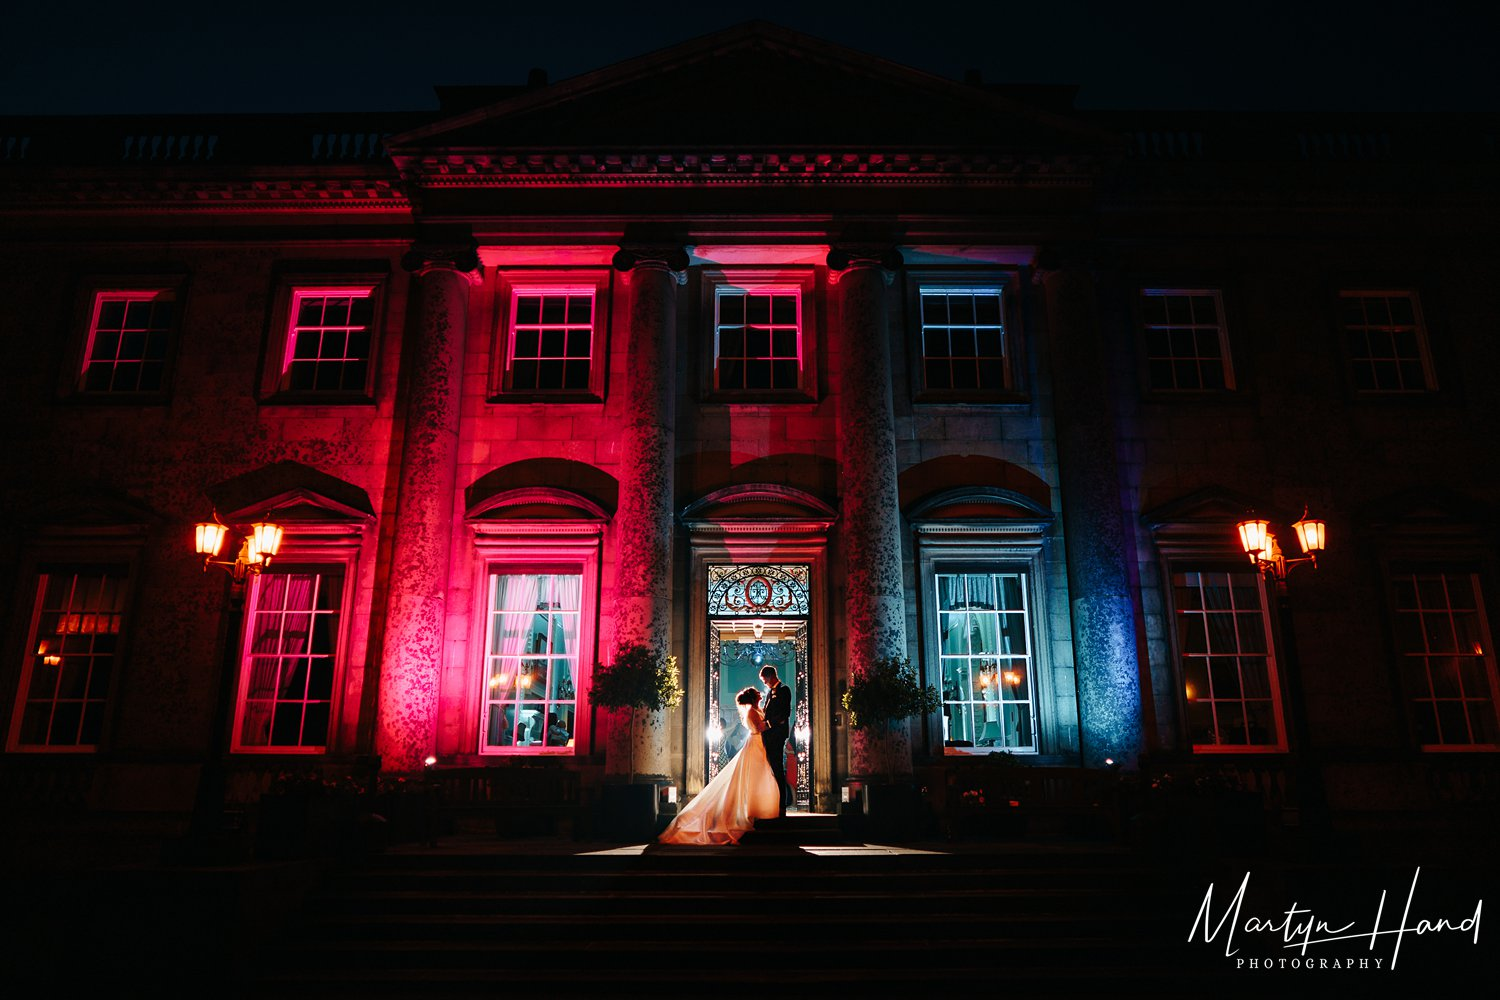 denton hall wedding photography martyn hand yorkshire bride groo